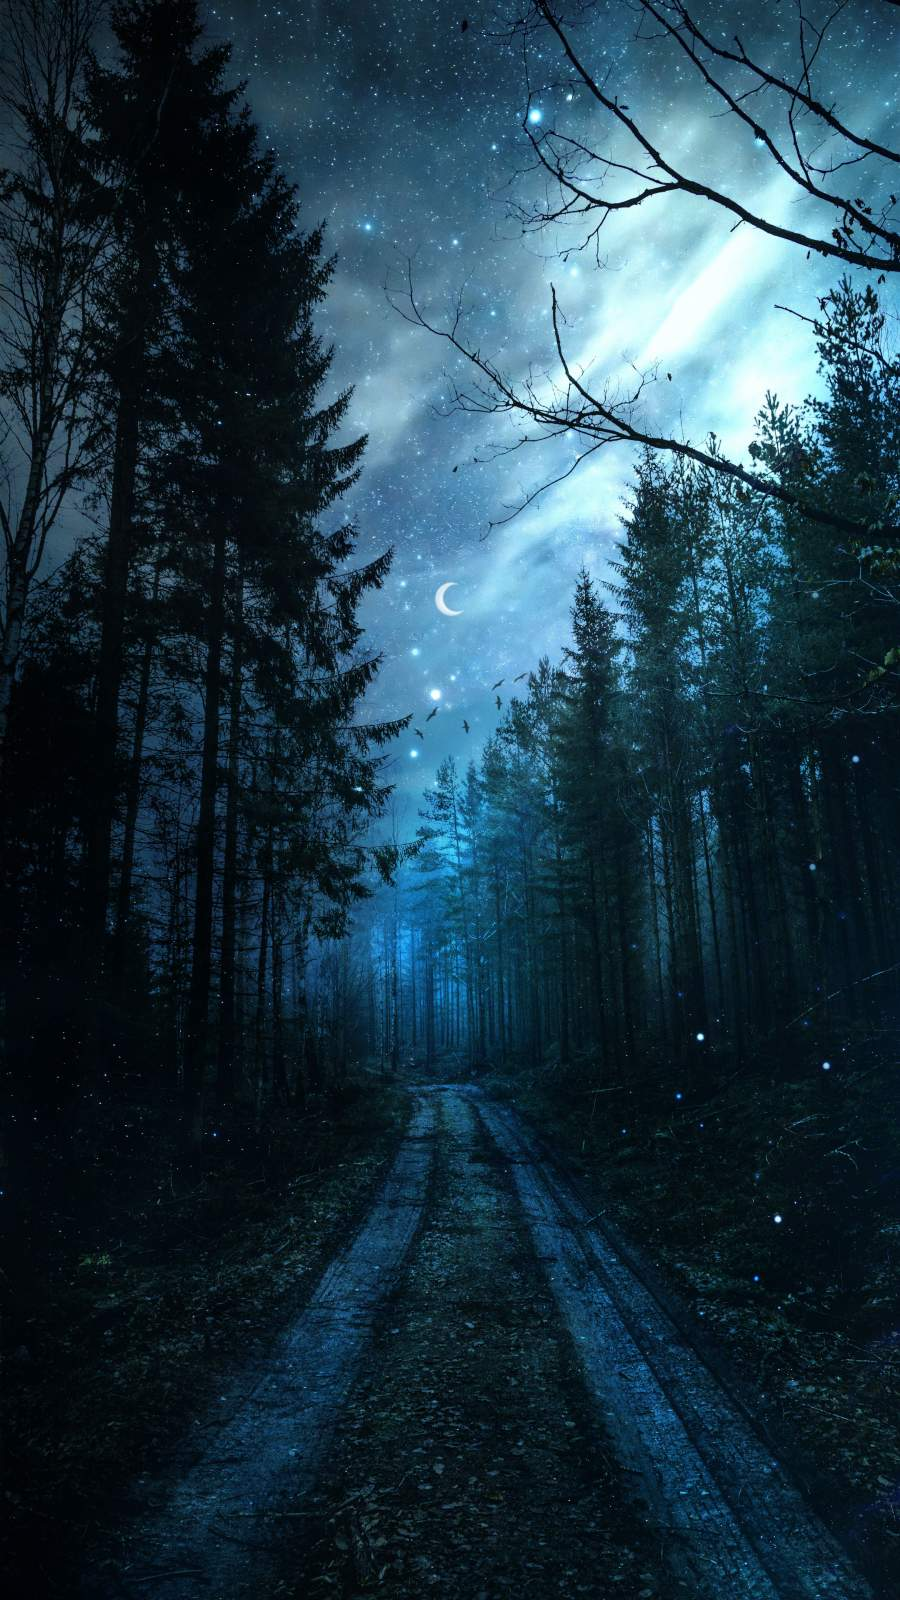 Magical Forest Night Starry Sky